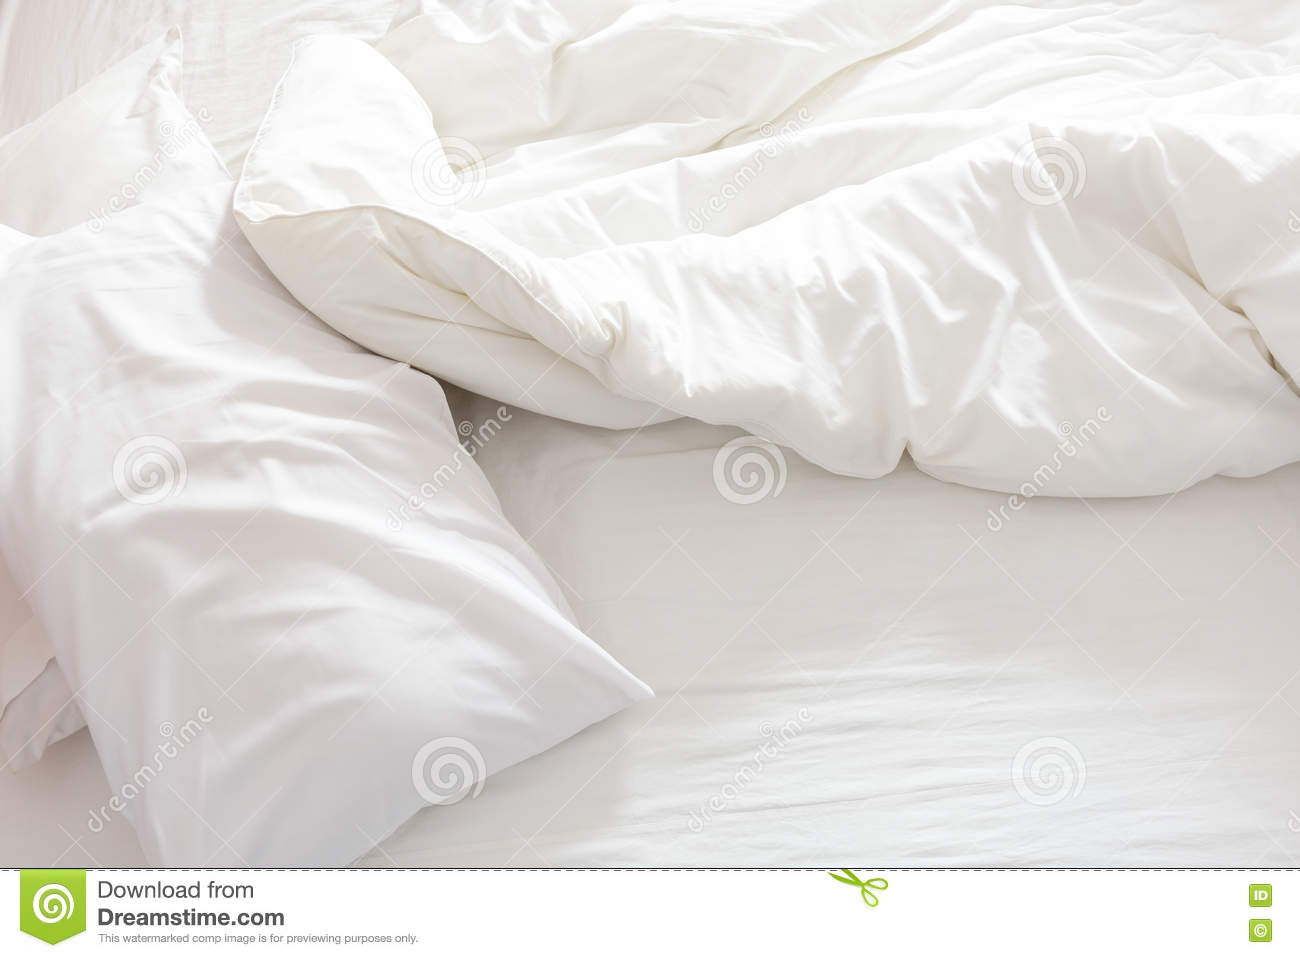 Rumpled bed sheet - Top View Of An Unmade Bed With Crumpled Bed Sheet